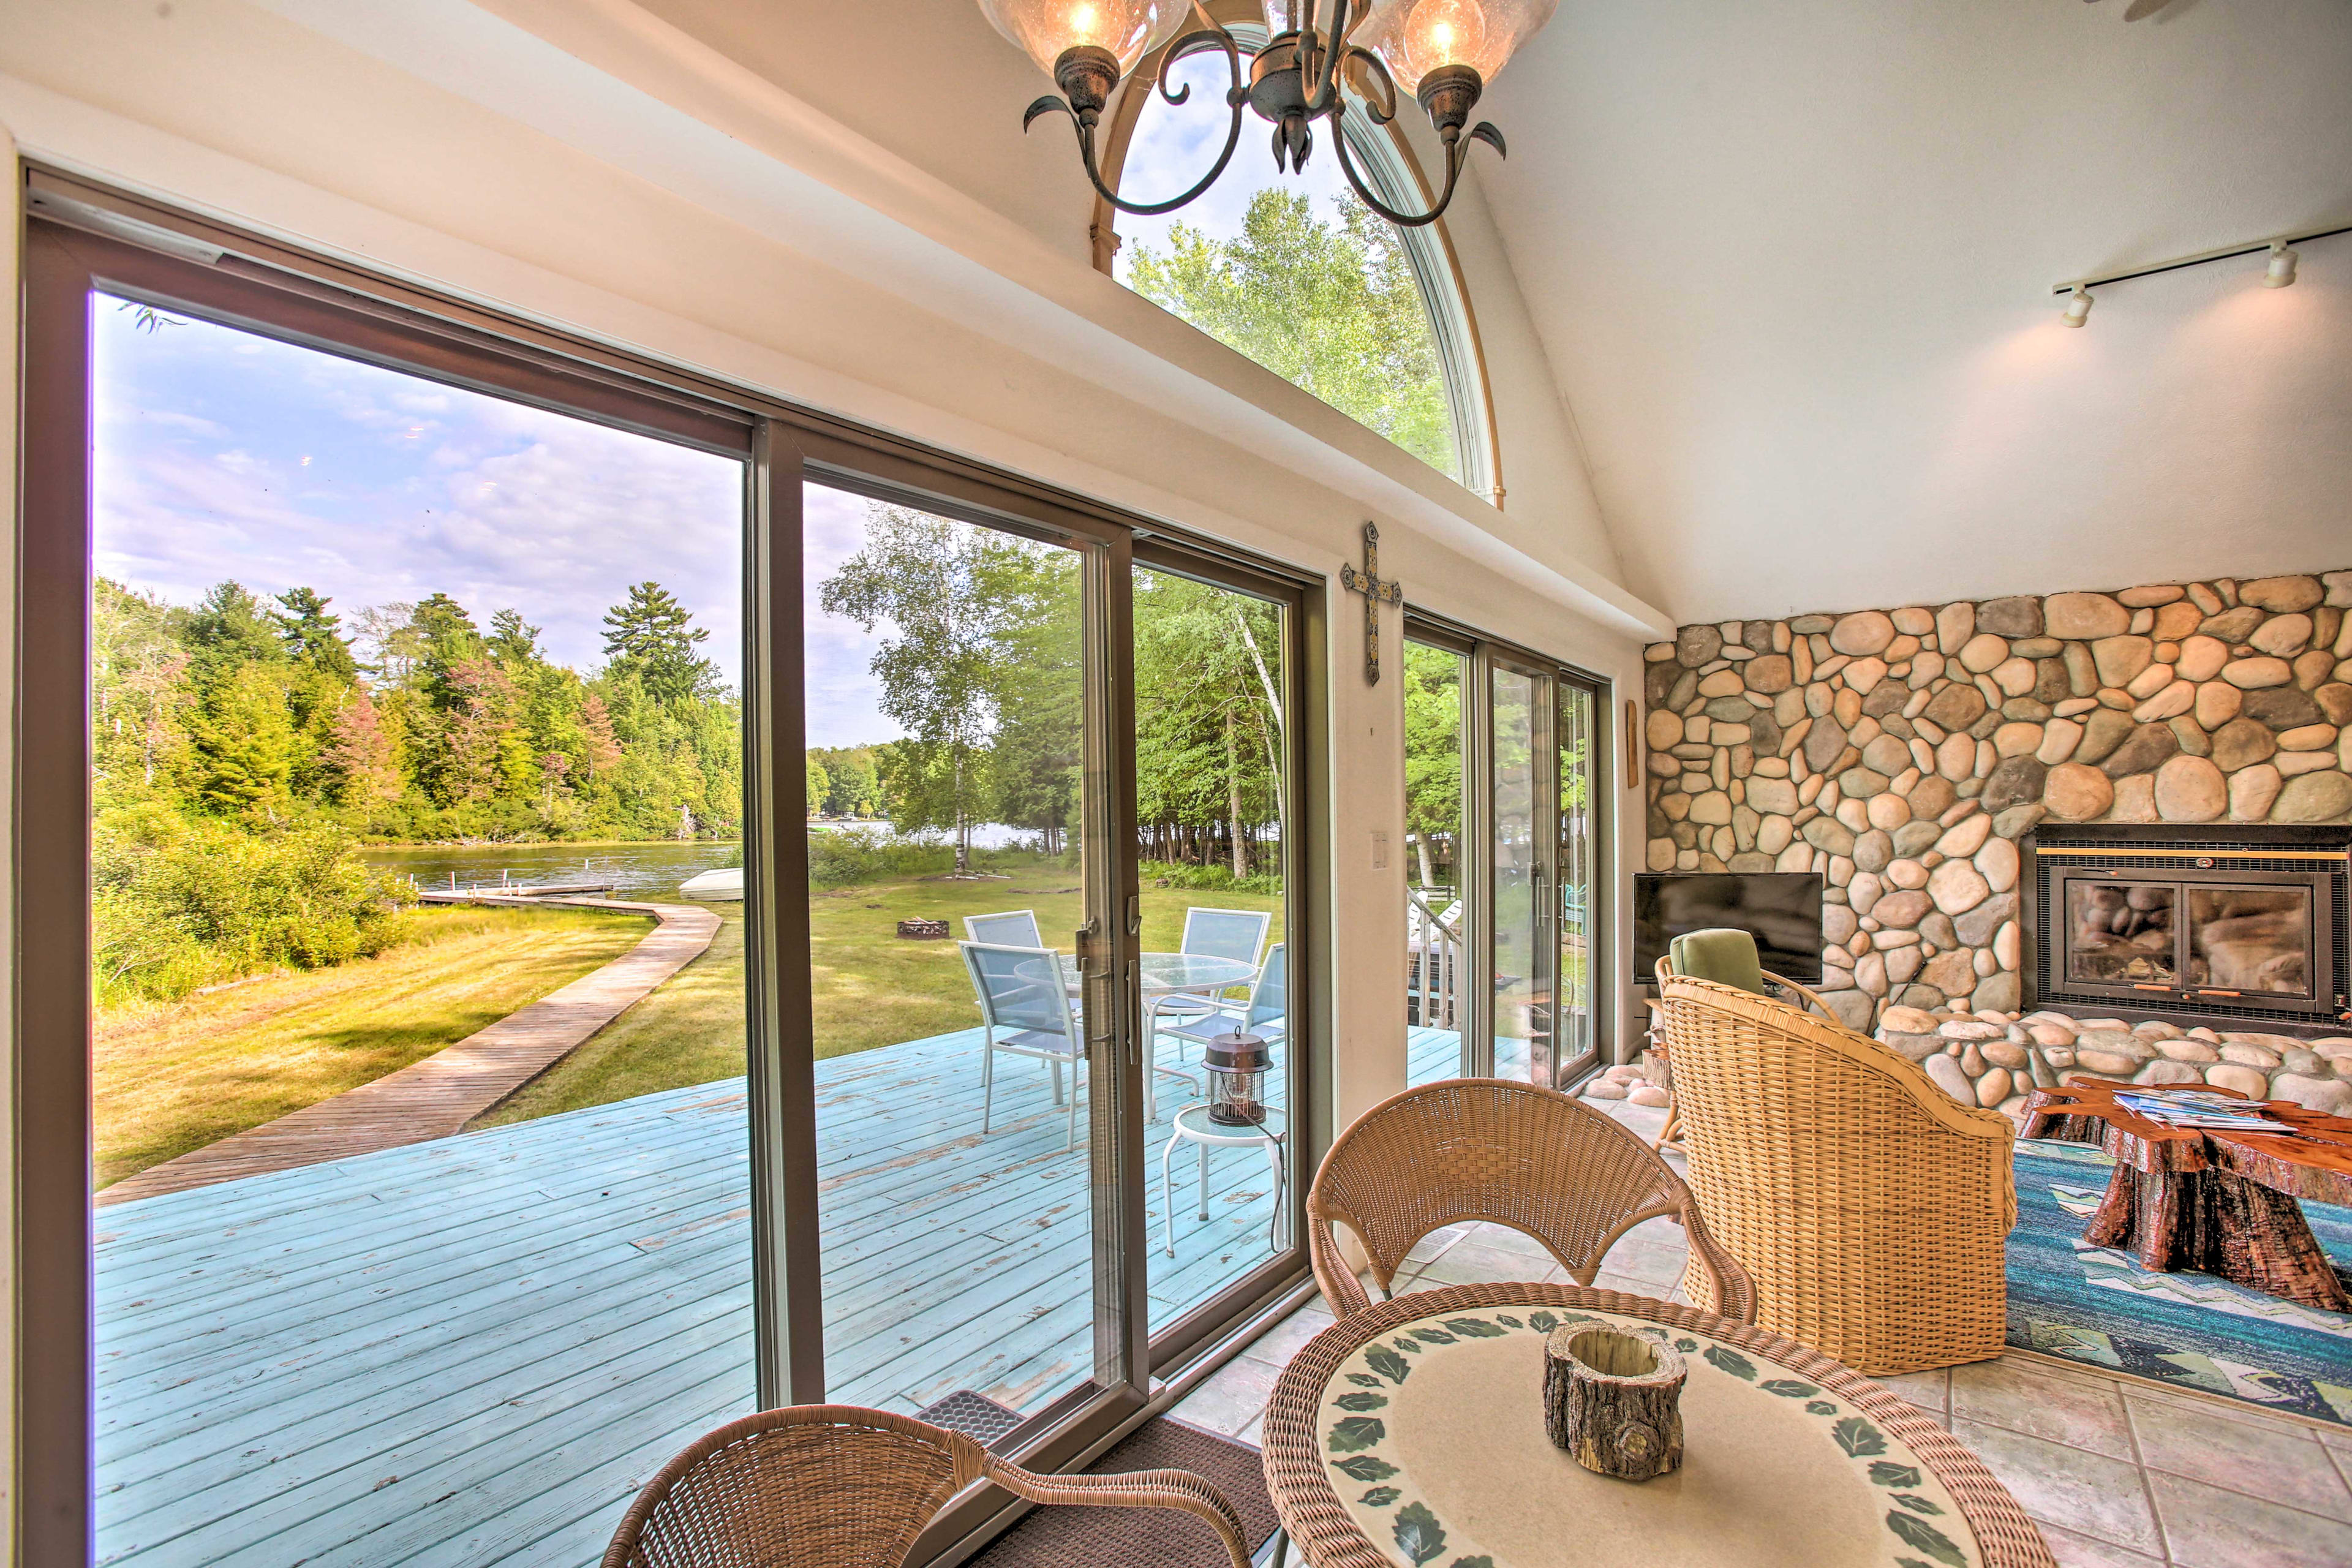 Dine in style while looking out over the lake!